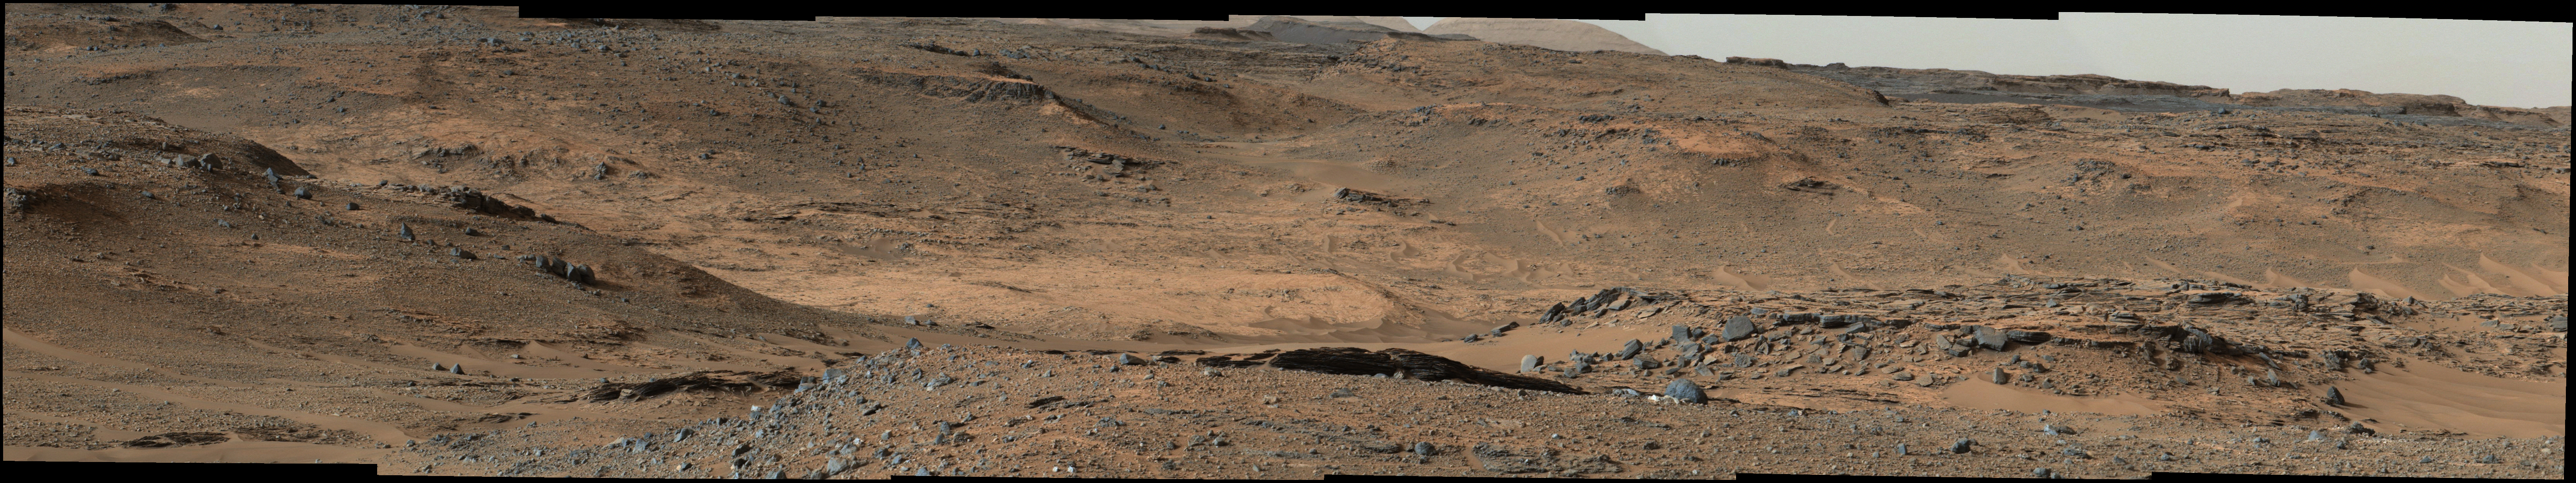 curiosity mars earth - photo #14